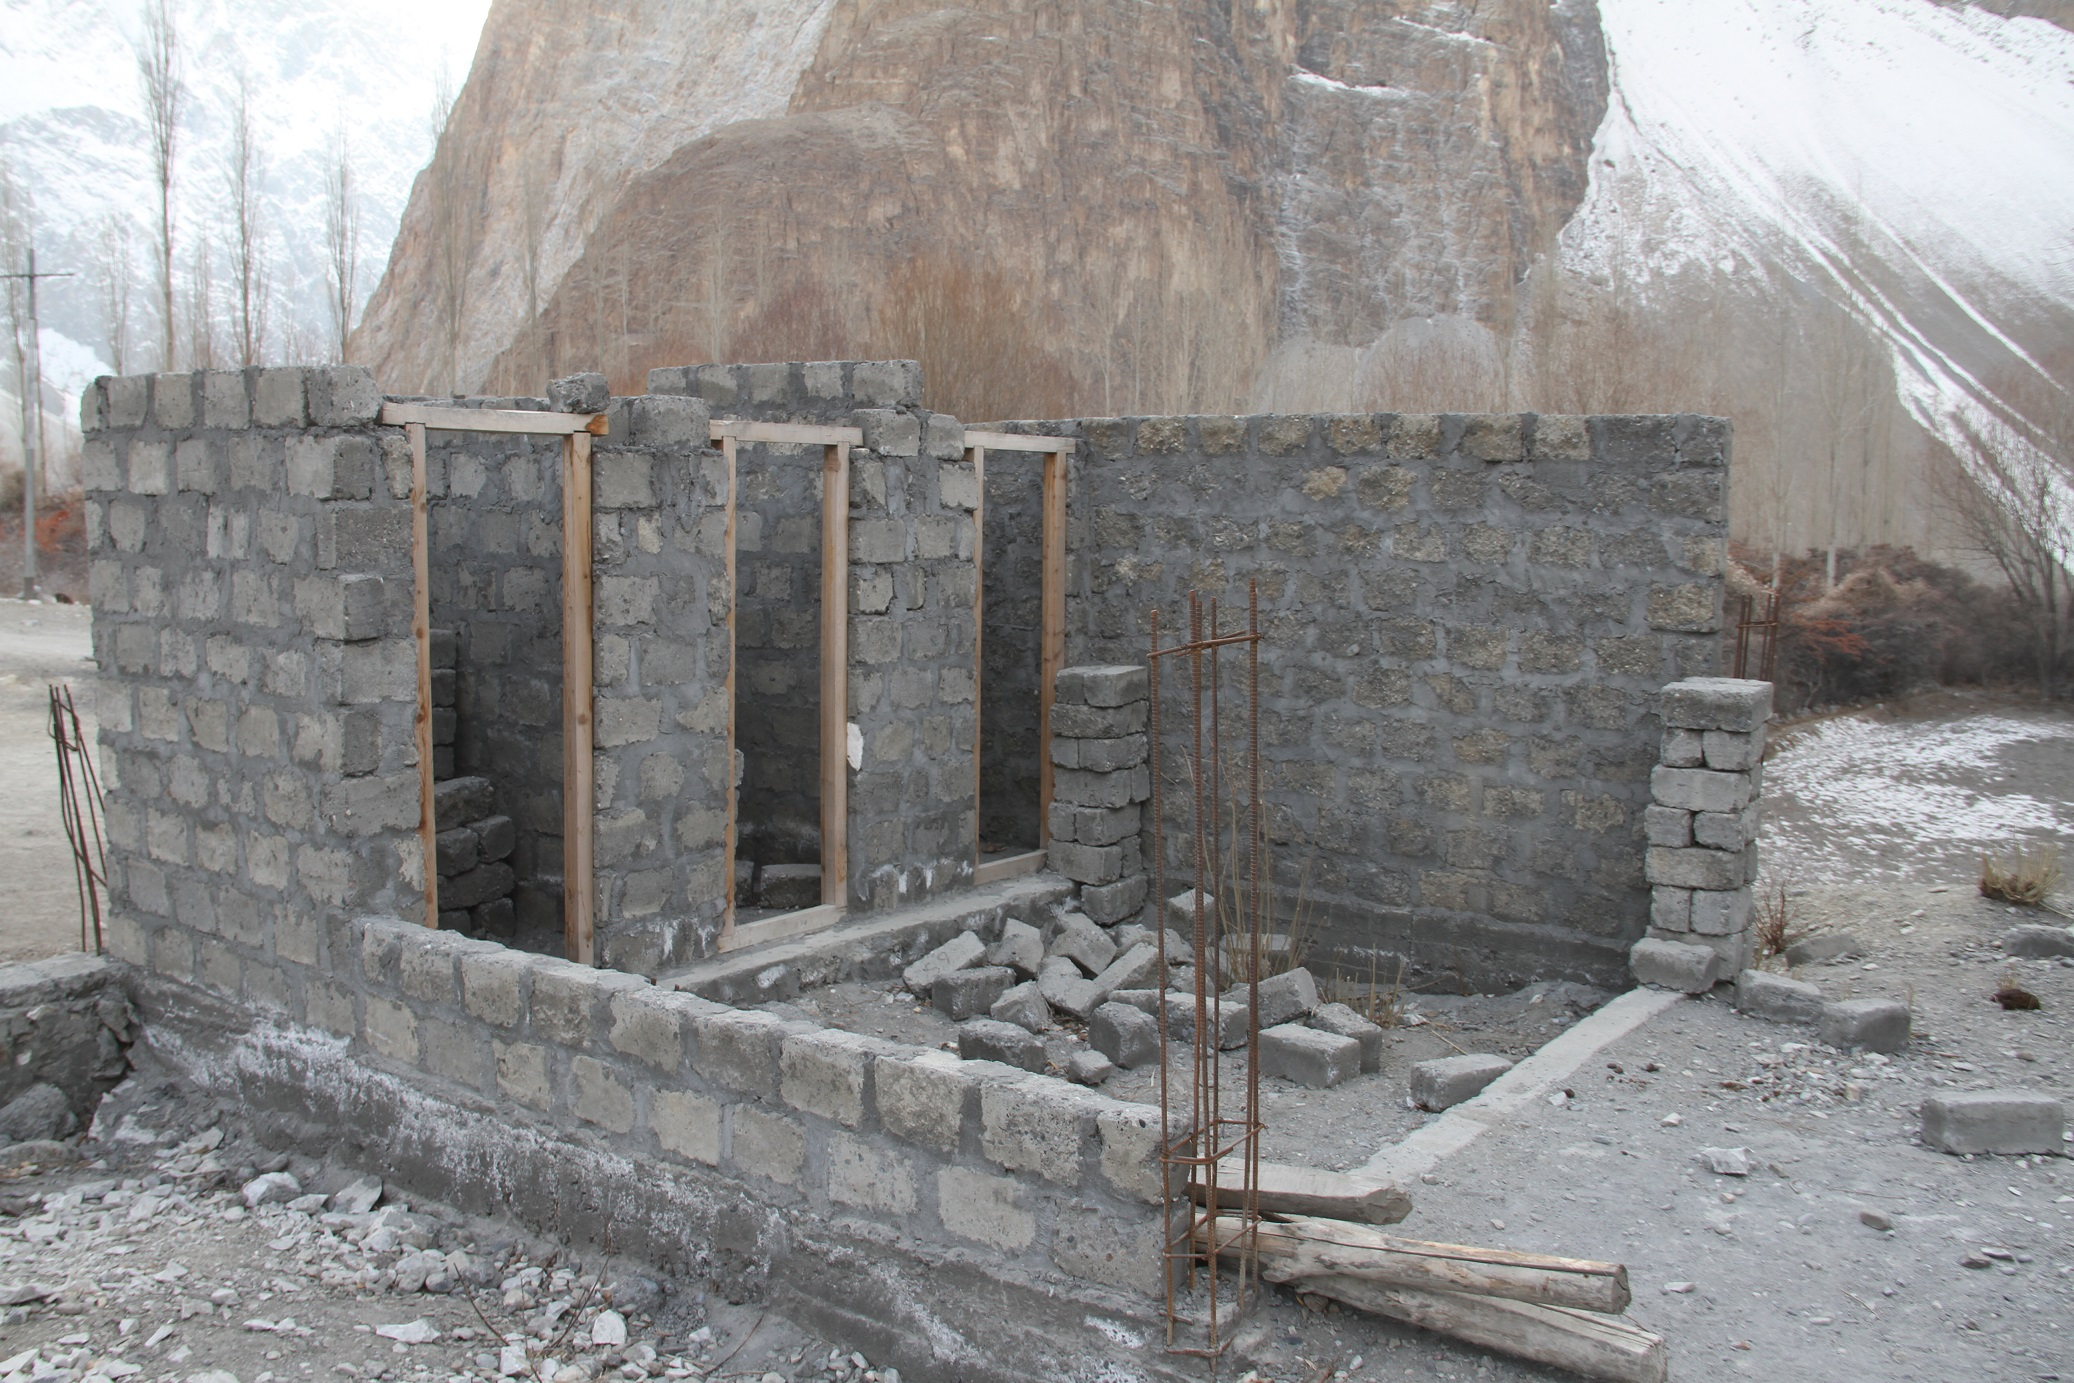 This primary school in Jamalabad (Gojal Valley) has been under-construction for 10 years